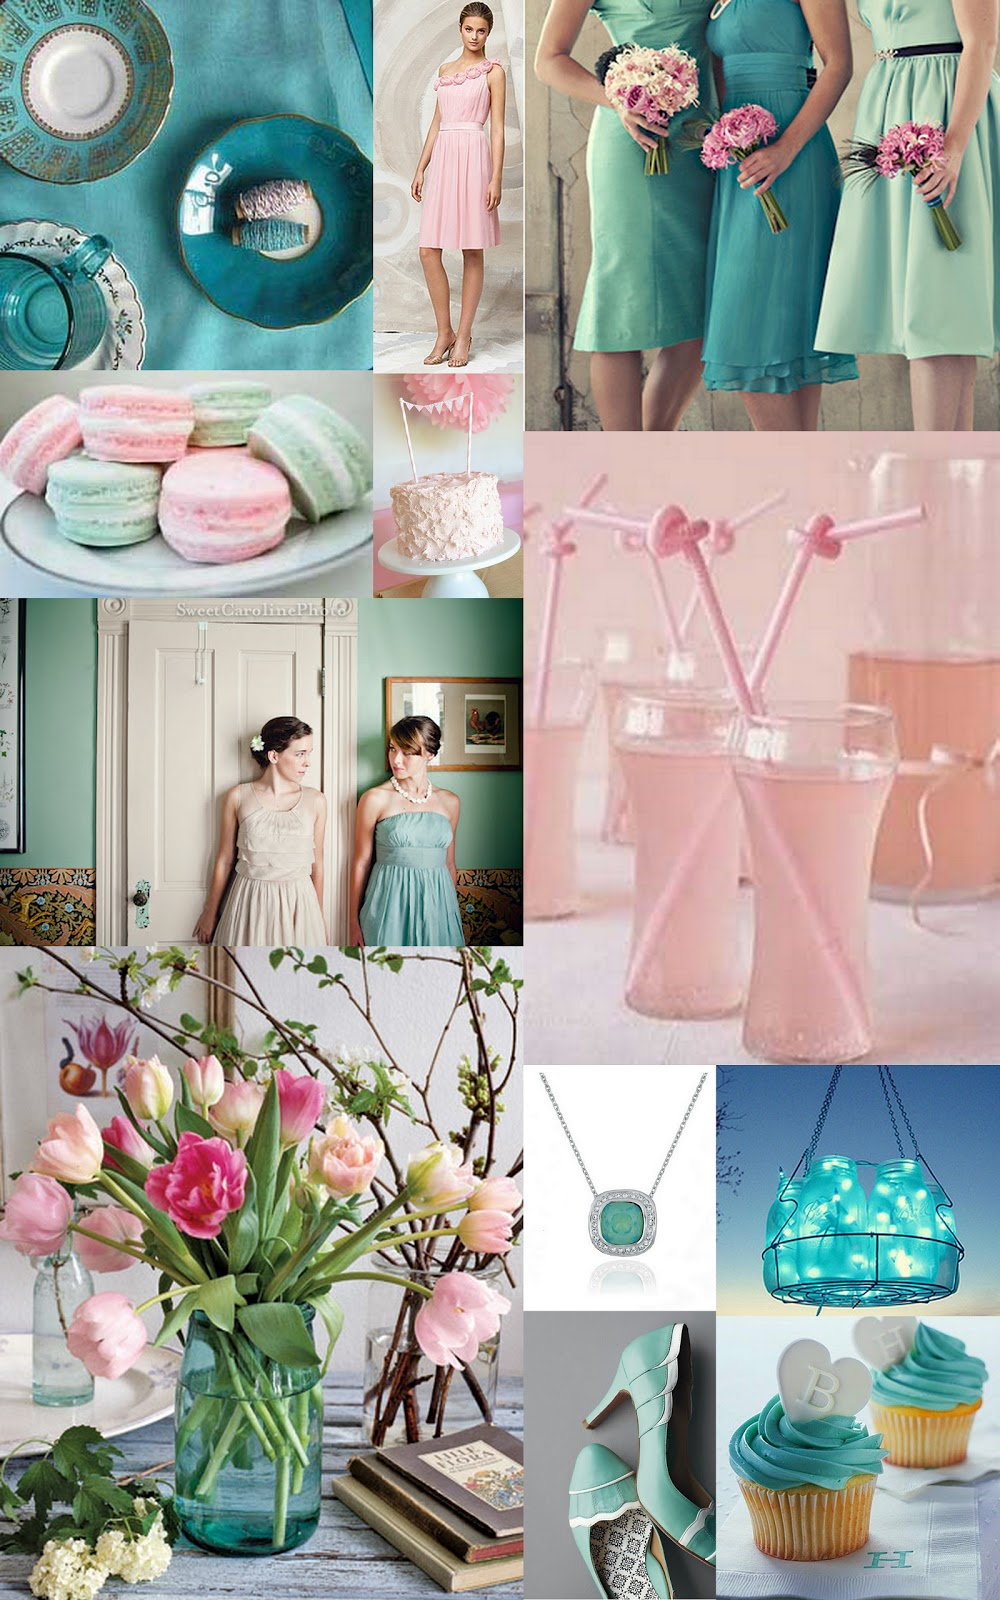 Wedding Inspiration Colour Inspiration Board Weddinginspiration Colorboard Paper Dolls Pink